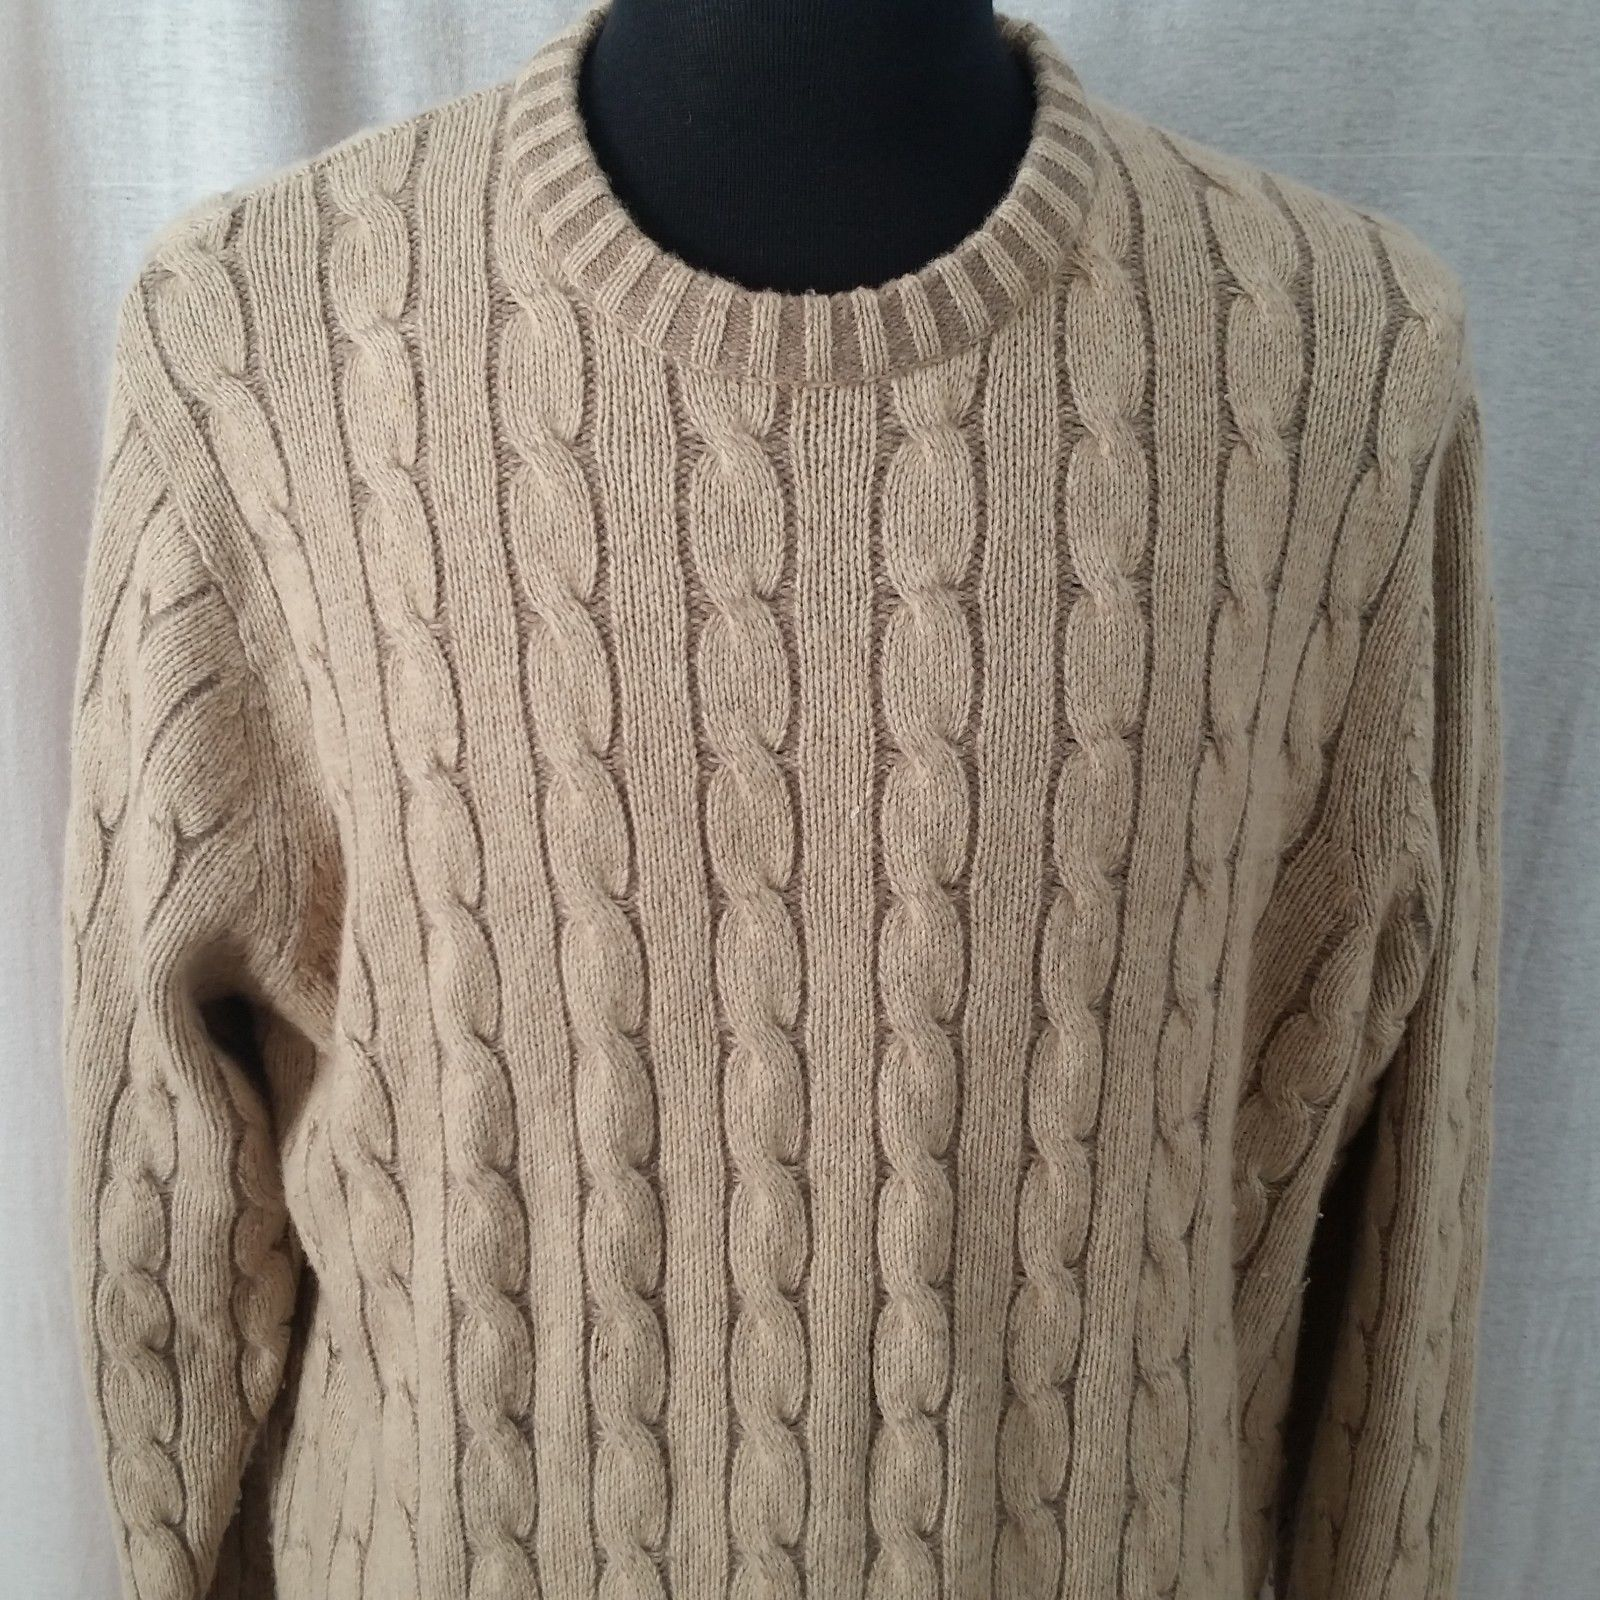 Jos A Bank Lambs Wool  Herren Lg Tan Cable Knit Pullover Sweater Chunky Soft